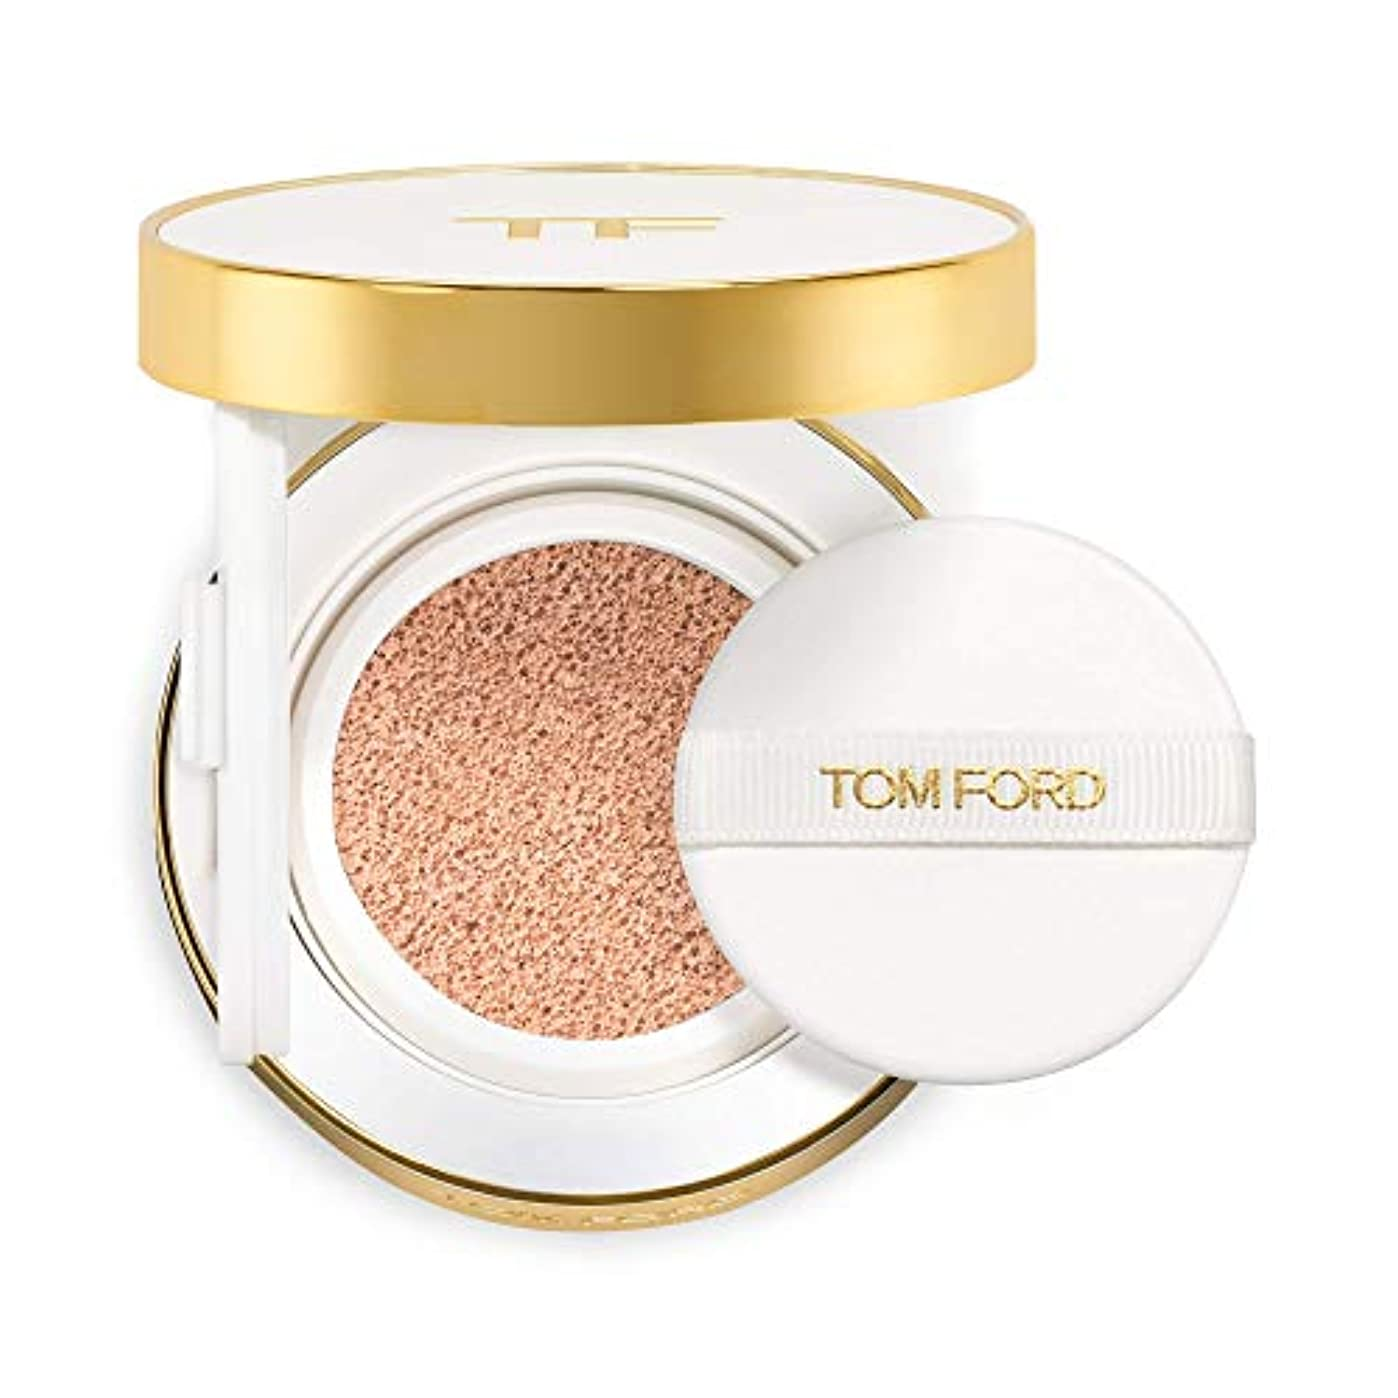 私フィヨルド一般的なトム フォード Soleil Glow Tone Up Hydrating Cushion Compact Foundation SPF40 Refill - # 0.5 Porcelain 12g/0.42oz並行輸入品